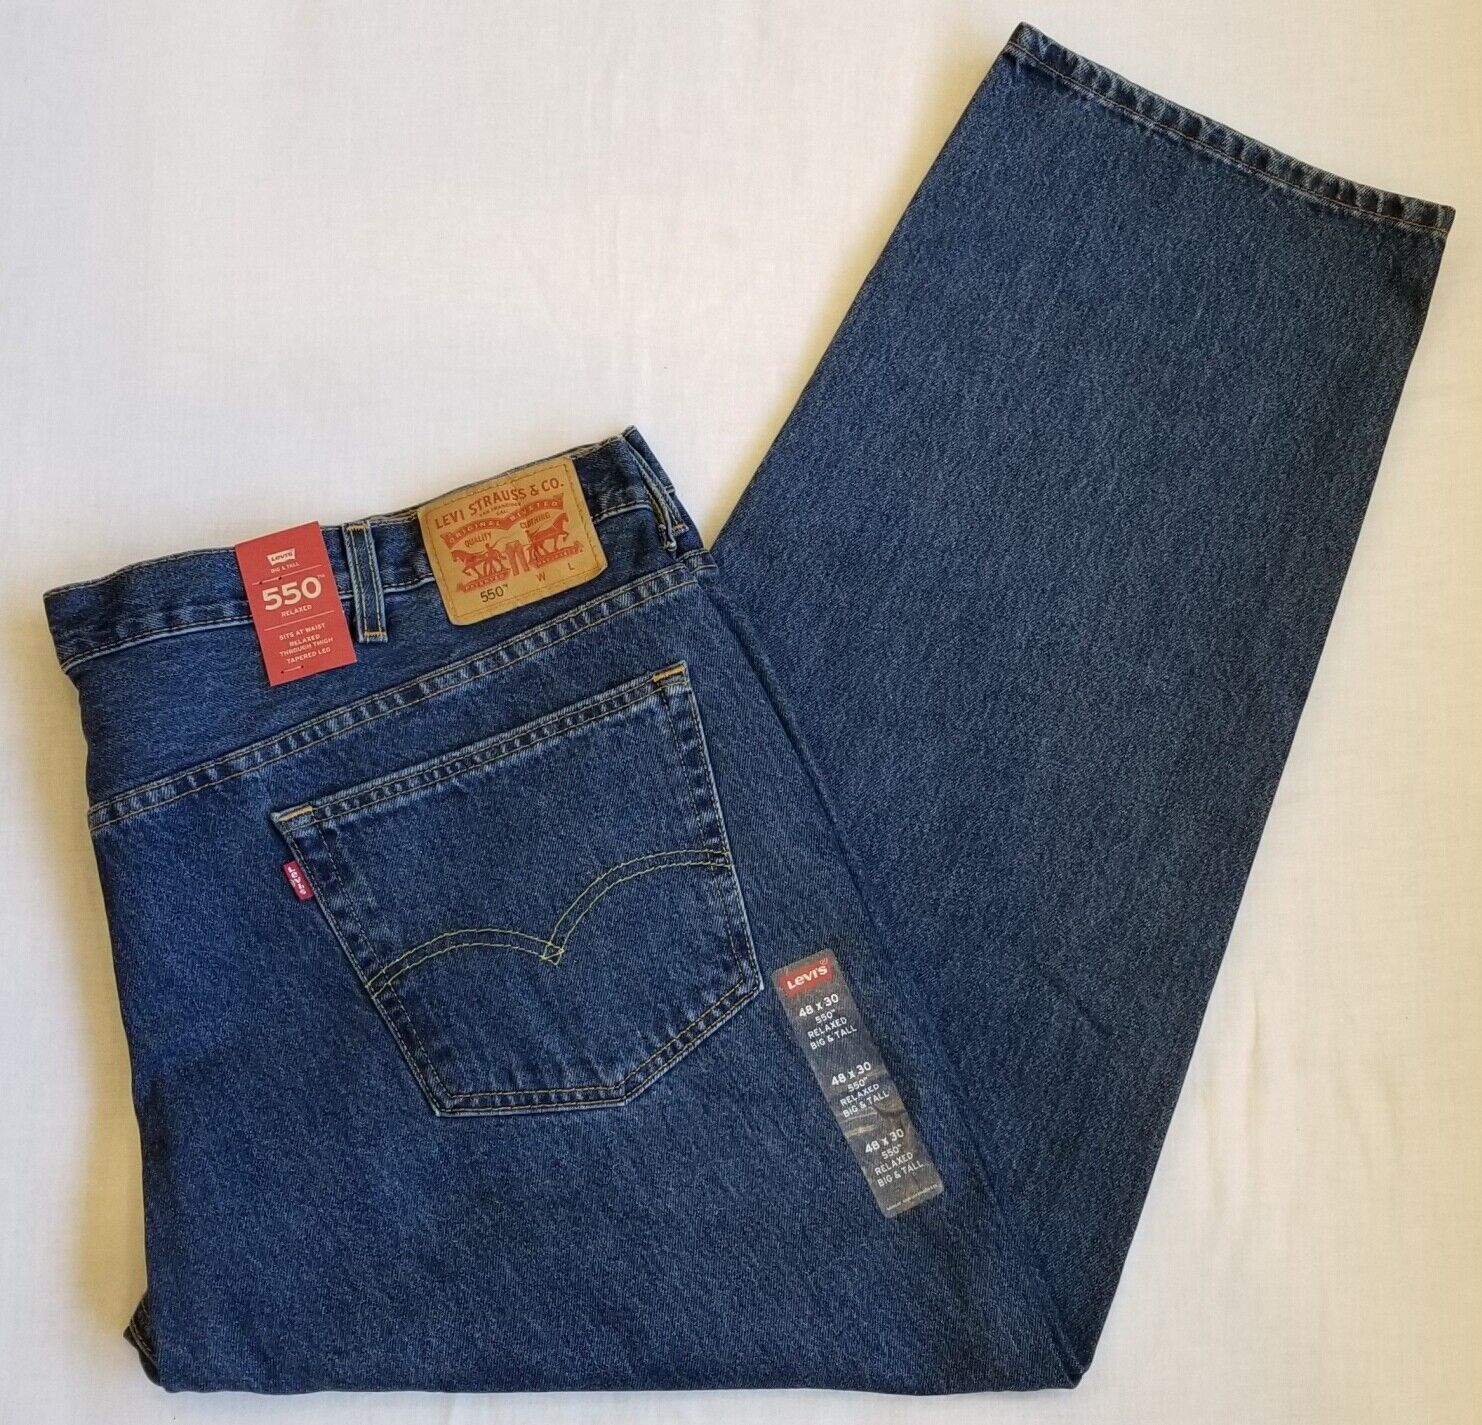 New Levi Strauss 550 Relaxed Fit Jeans Denim Pants Mens Size